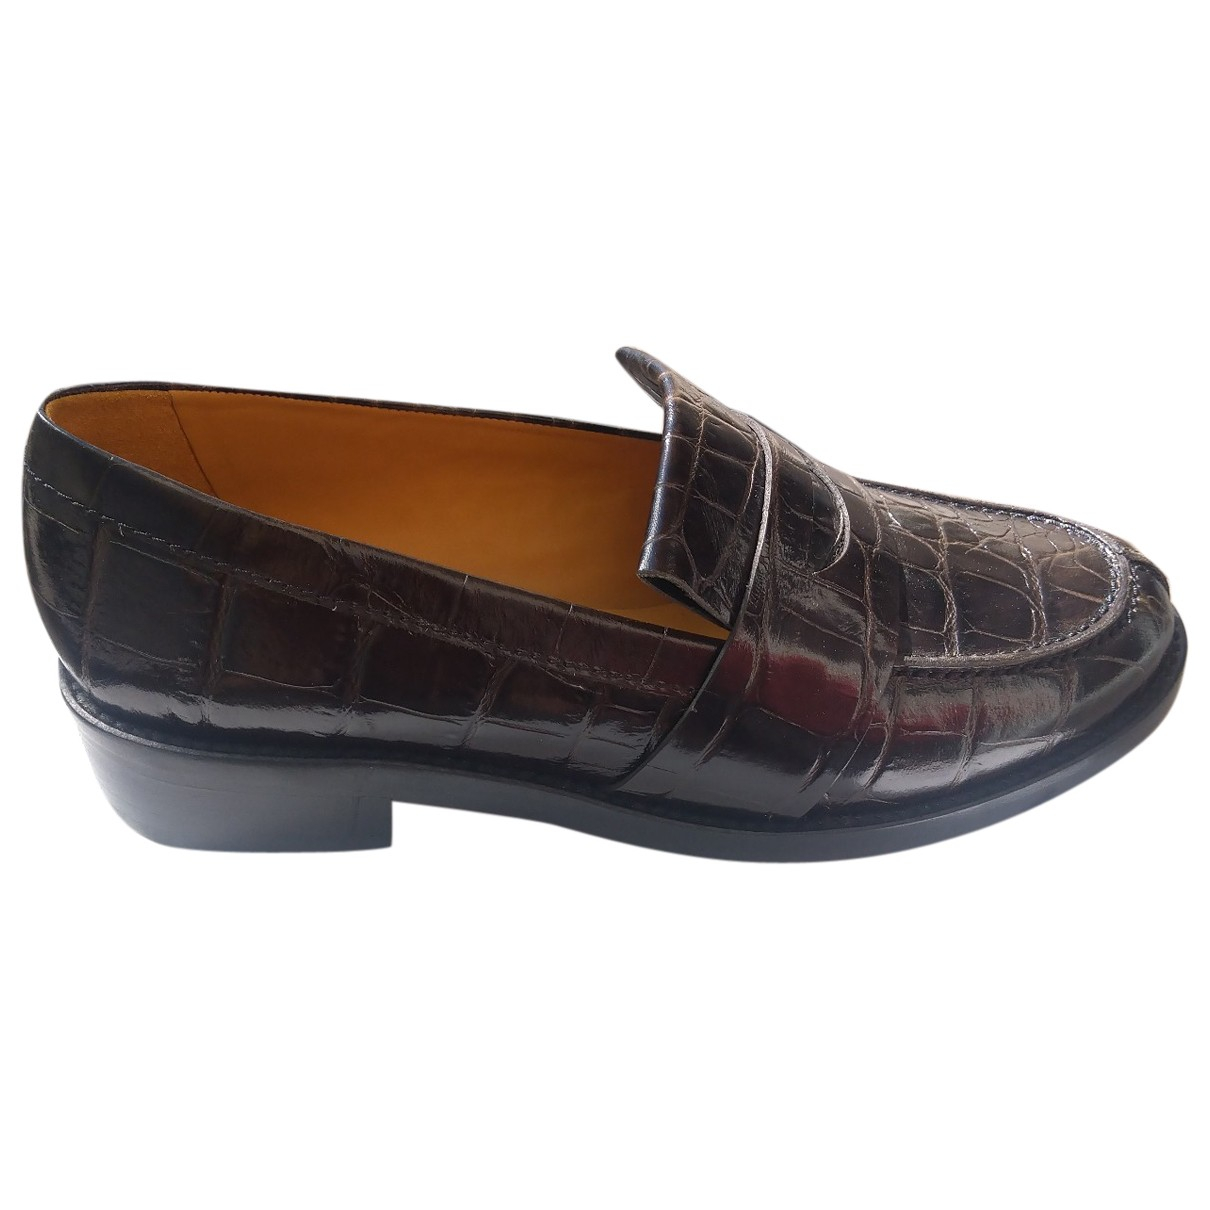 Sandro \N Brown Leather Flats for Women 40 EU